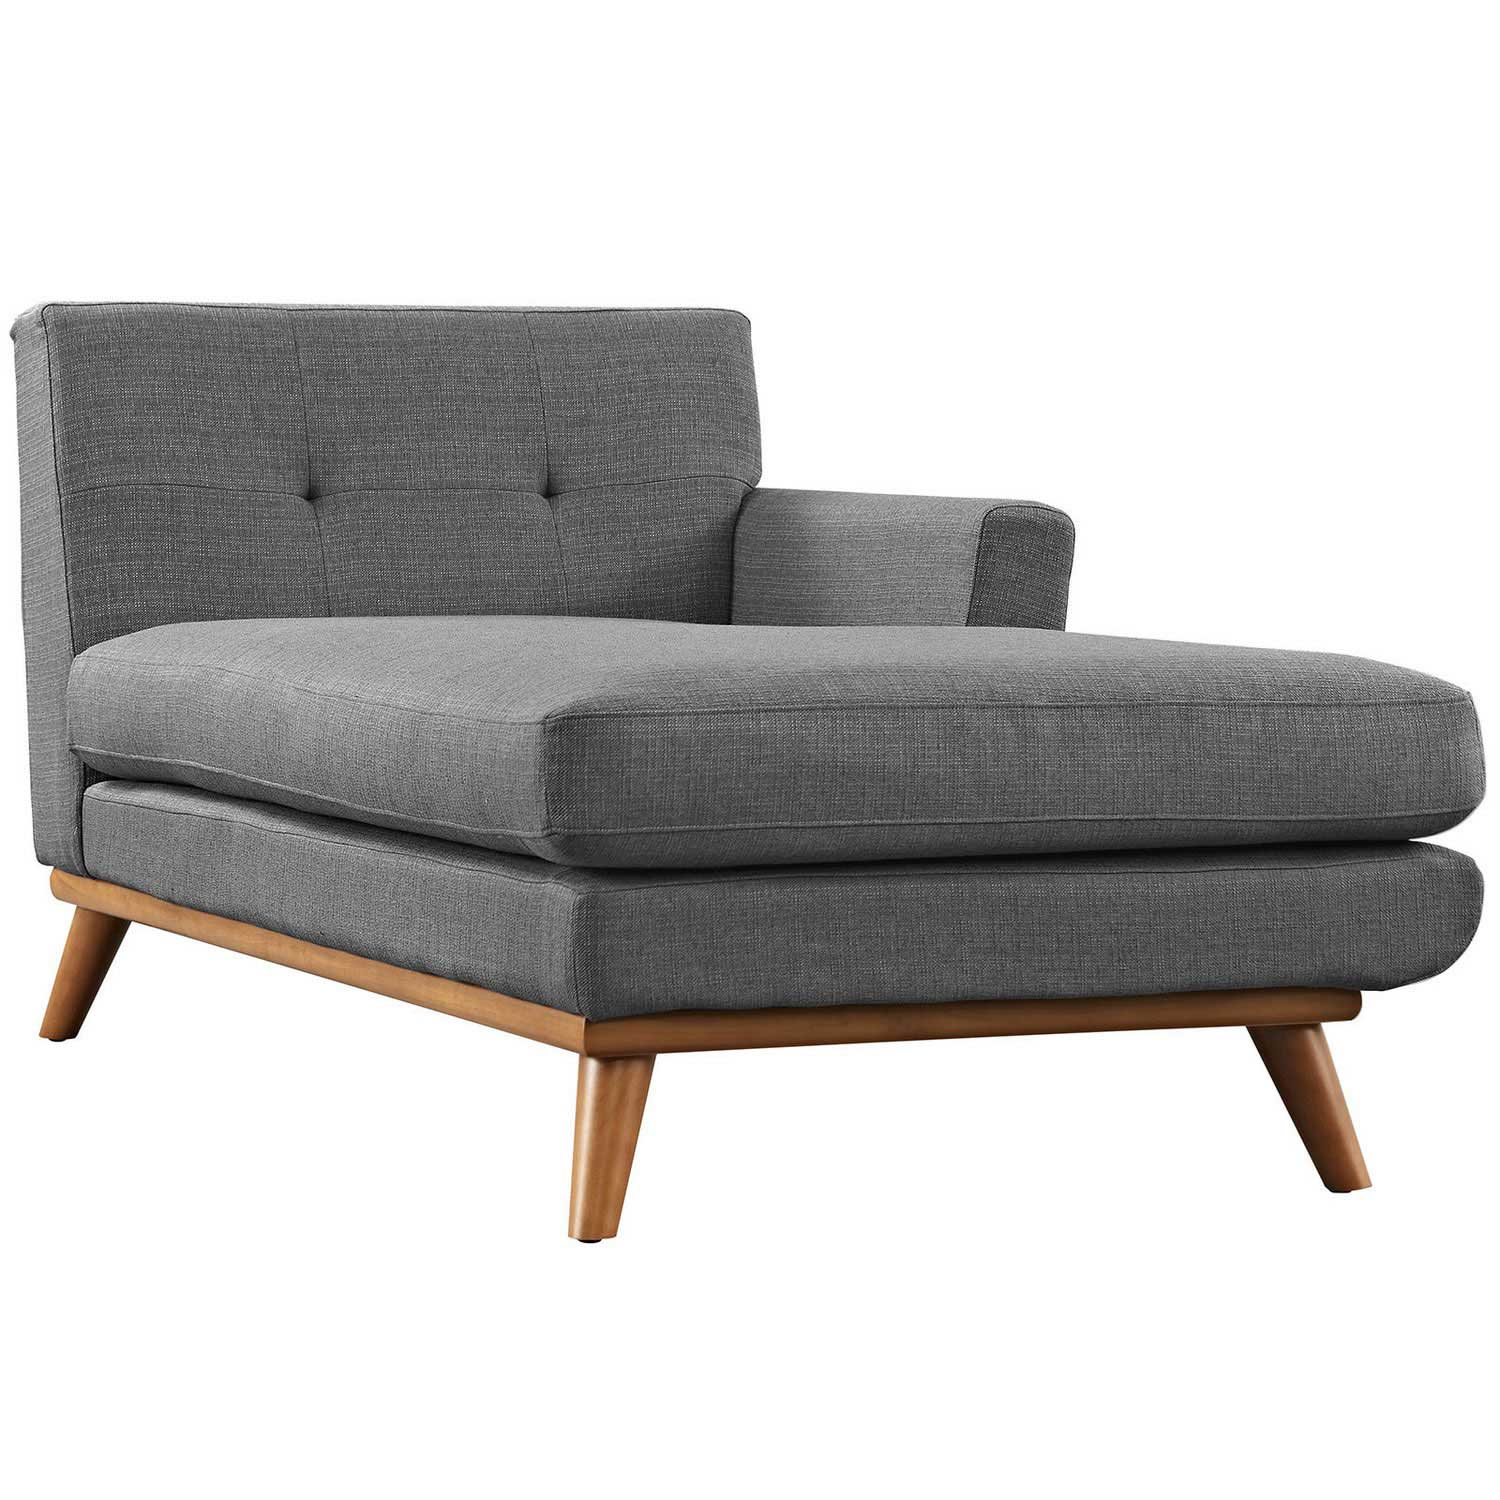 Modway Engage Right Arm Chaise - Gray